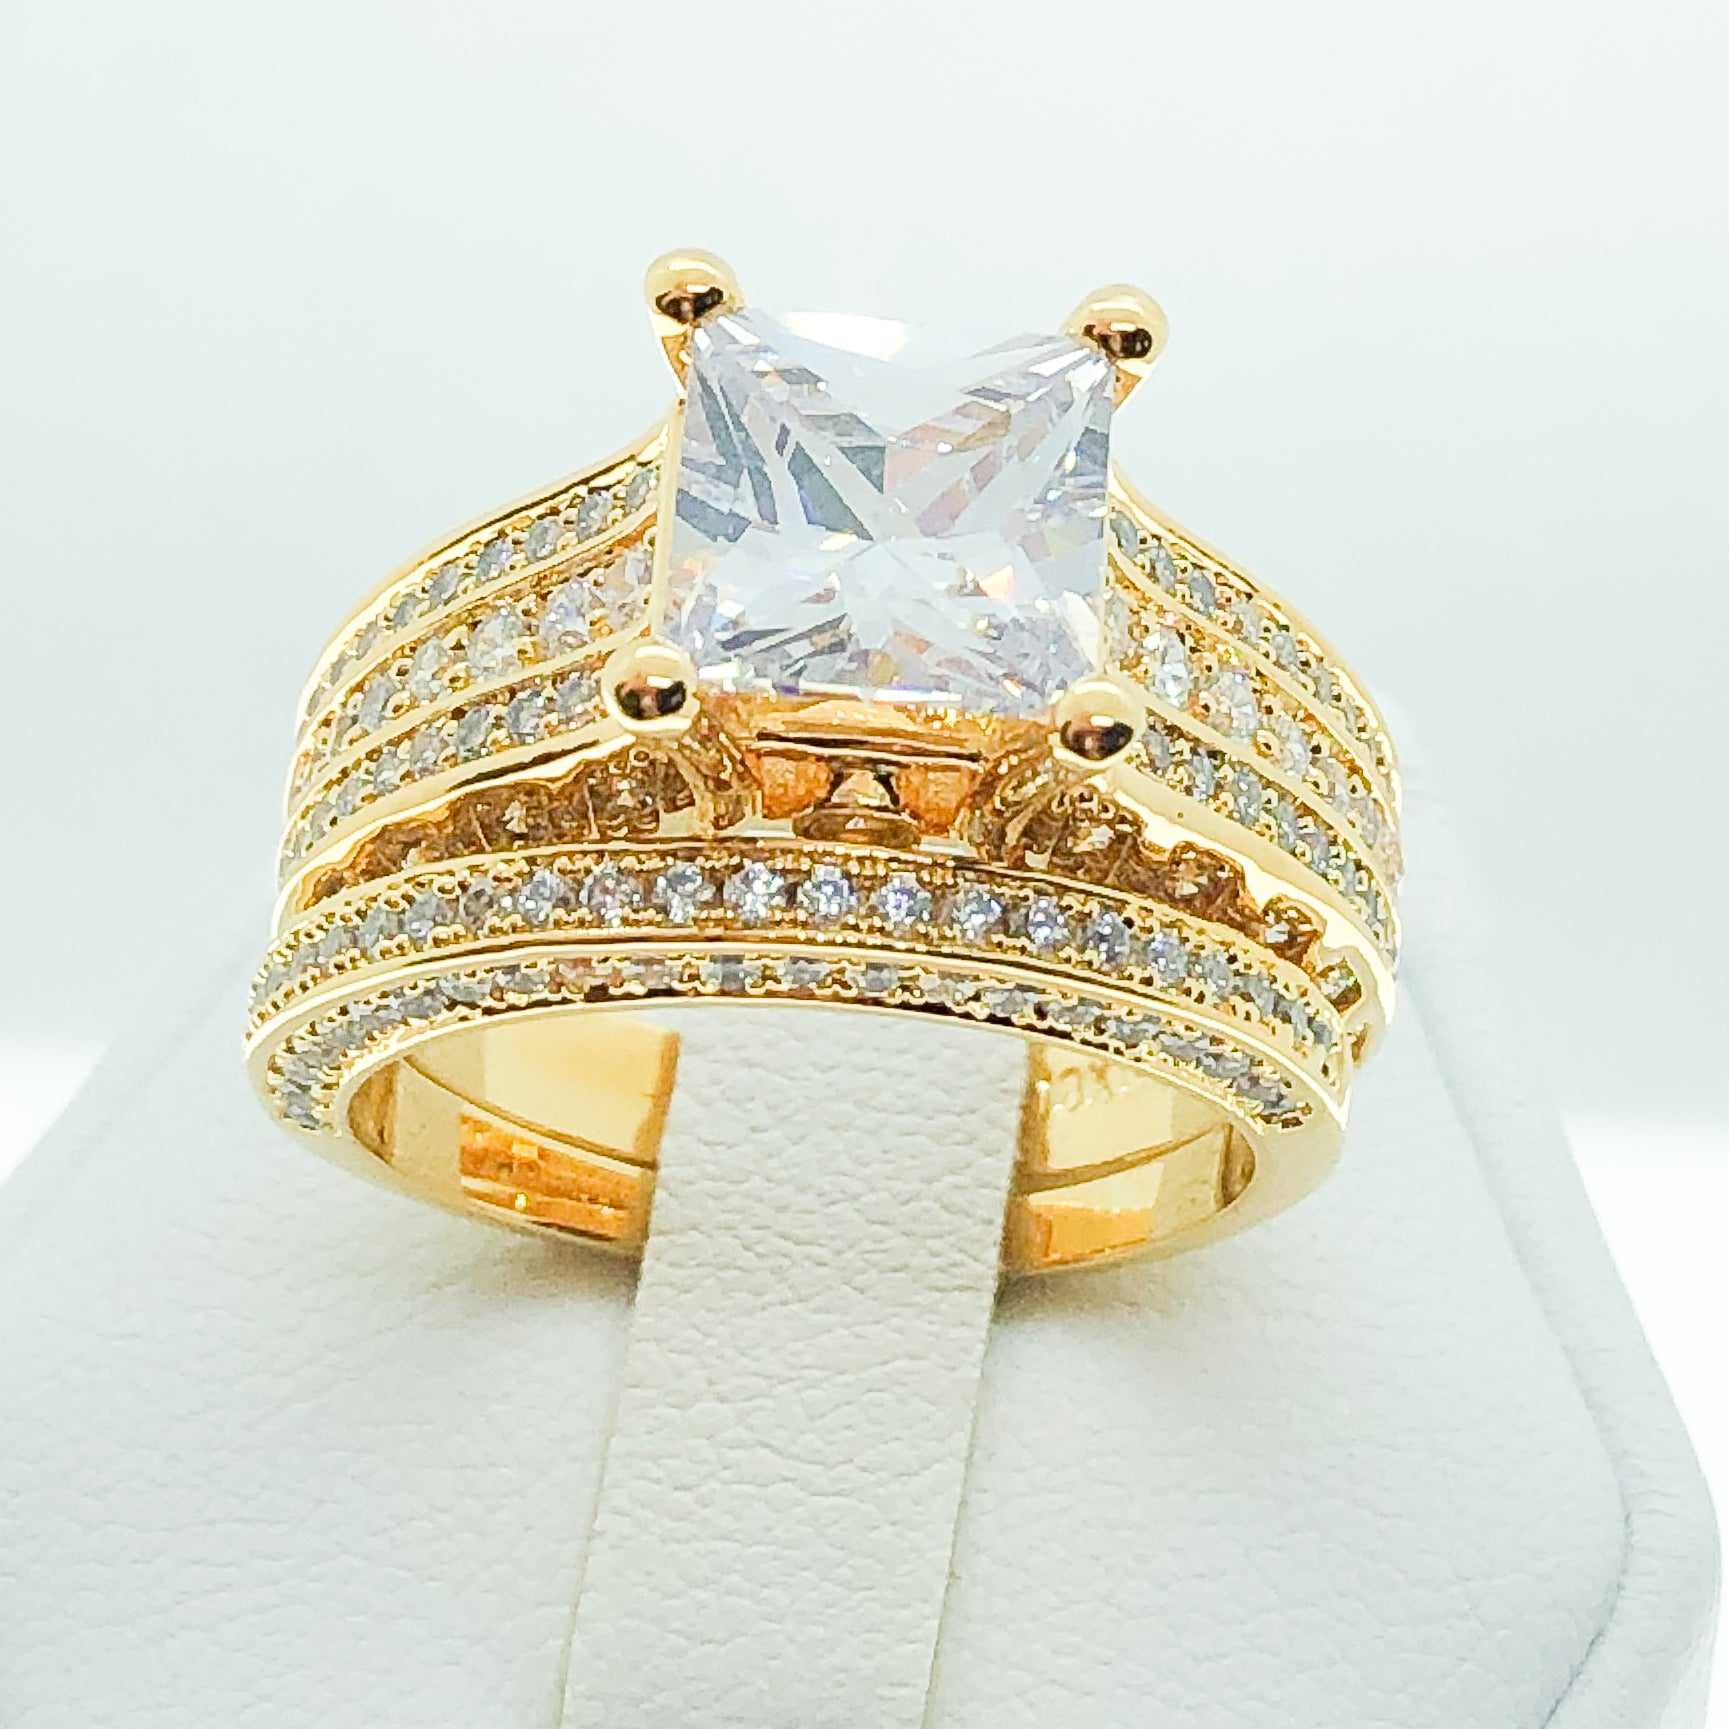 ID:R8024 Women Jewelry 18K Yellow Gold GF Exquisite Vintage Engagement Wedding Brilliance Clear Stones Band Ring 2pcs/Set